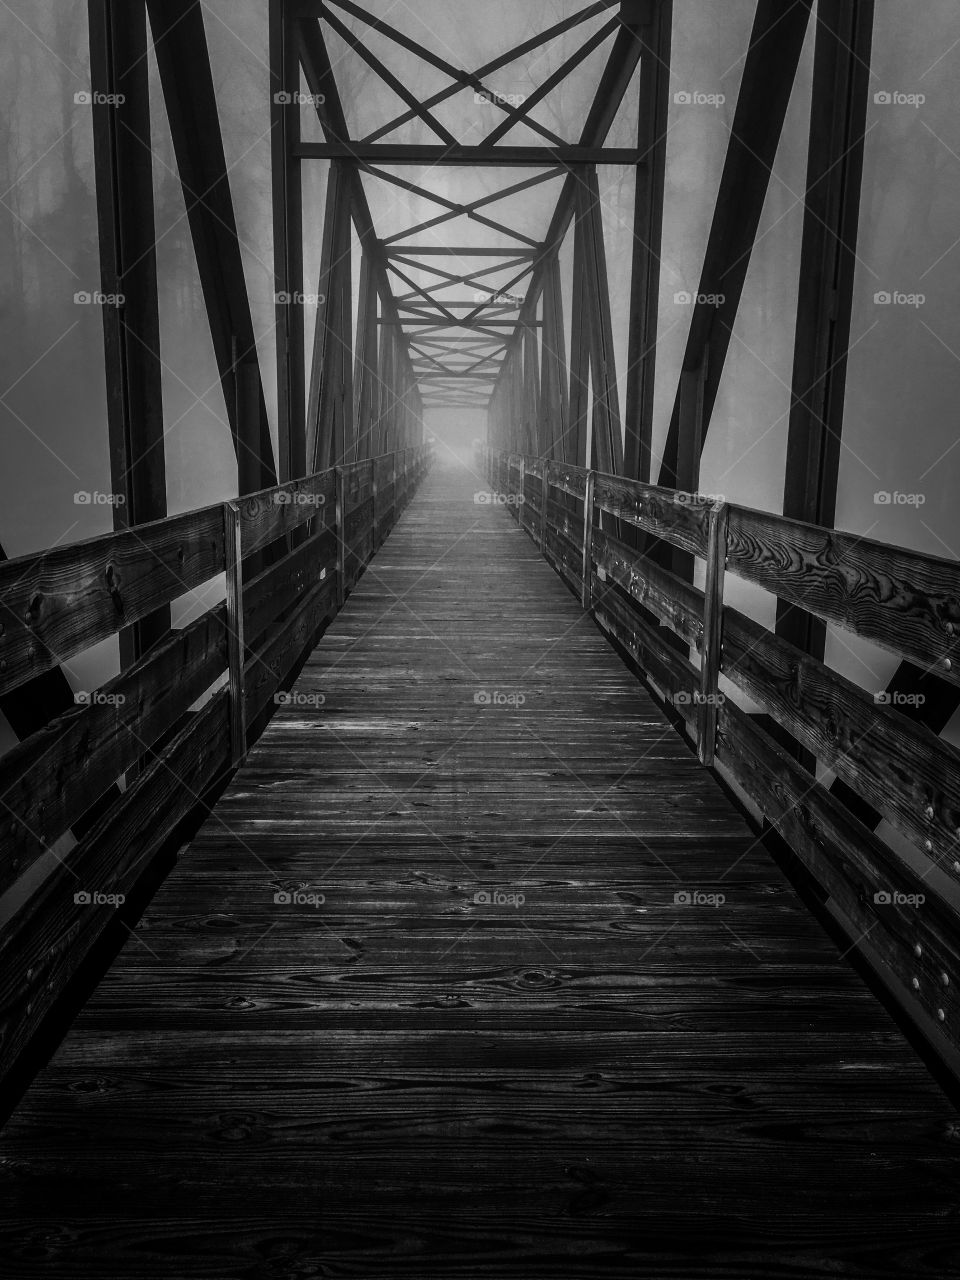 Black and white of an old steel and wood truss footbridge across the lake at Tims Ford State Park in Winchester Tennessee. The dark and foggy ambiance gives it a haunting and mysterious feel.